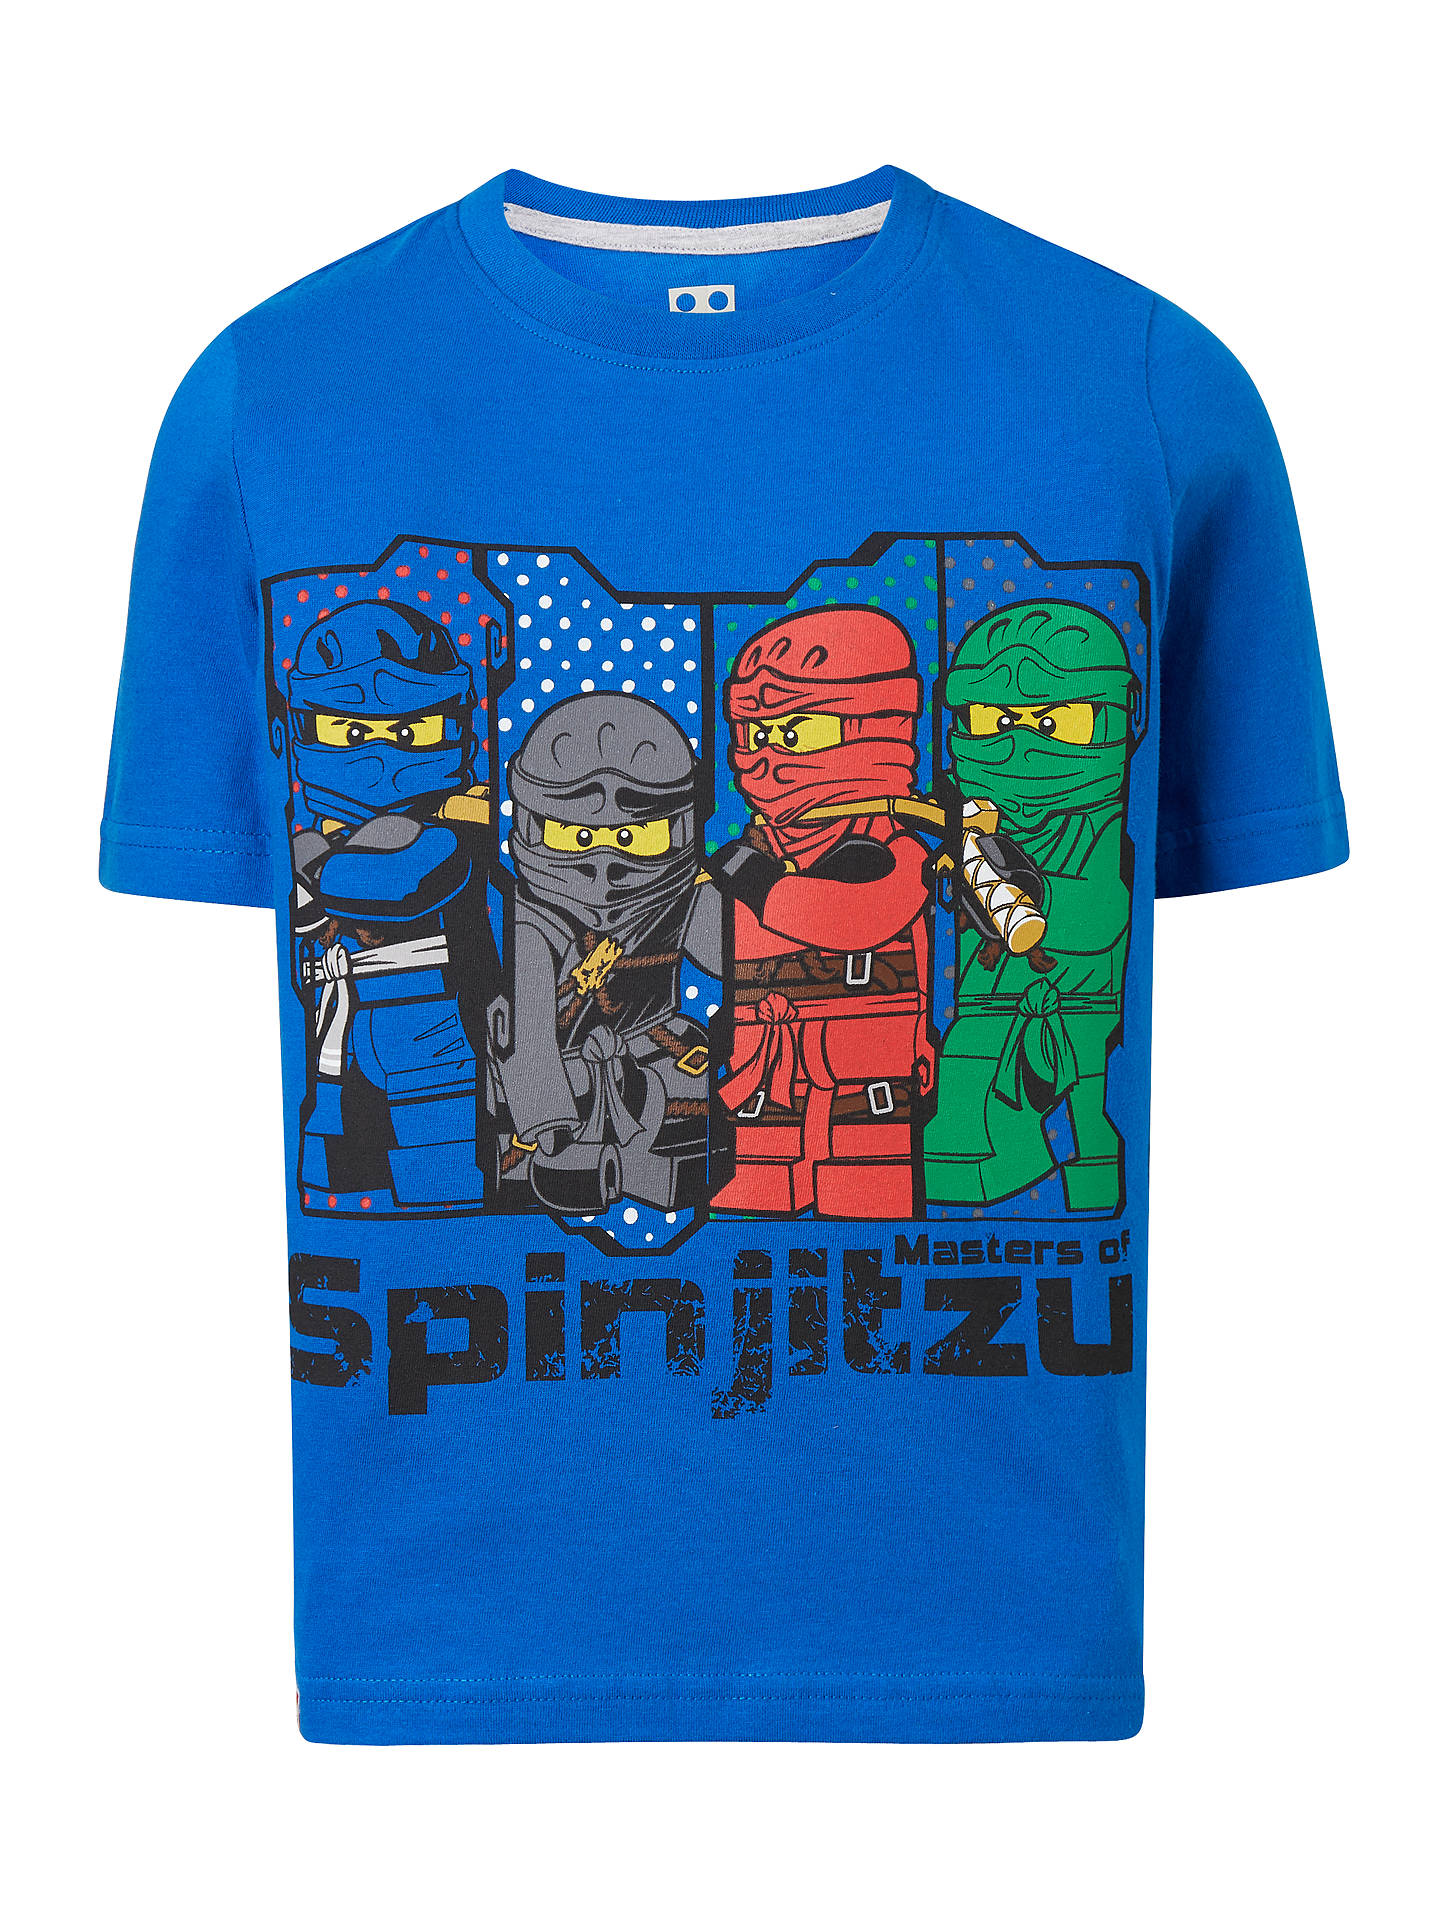 0113a0c1 Buy LEGO Children's Ninjago T-Shirt, Blue, 5-6 years Online at ...